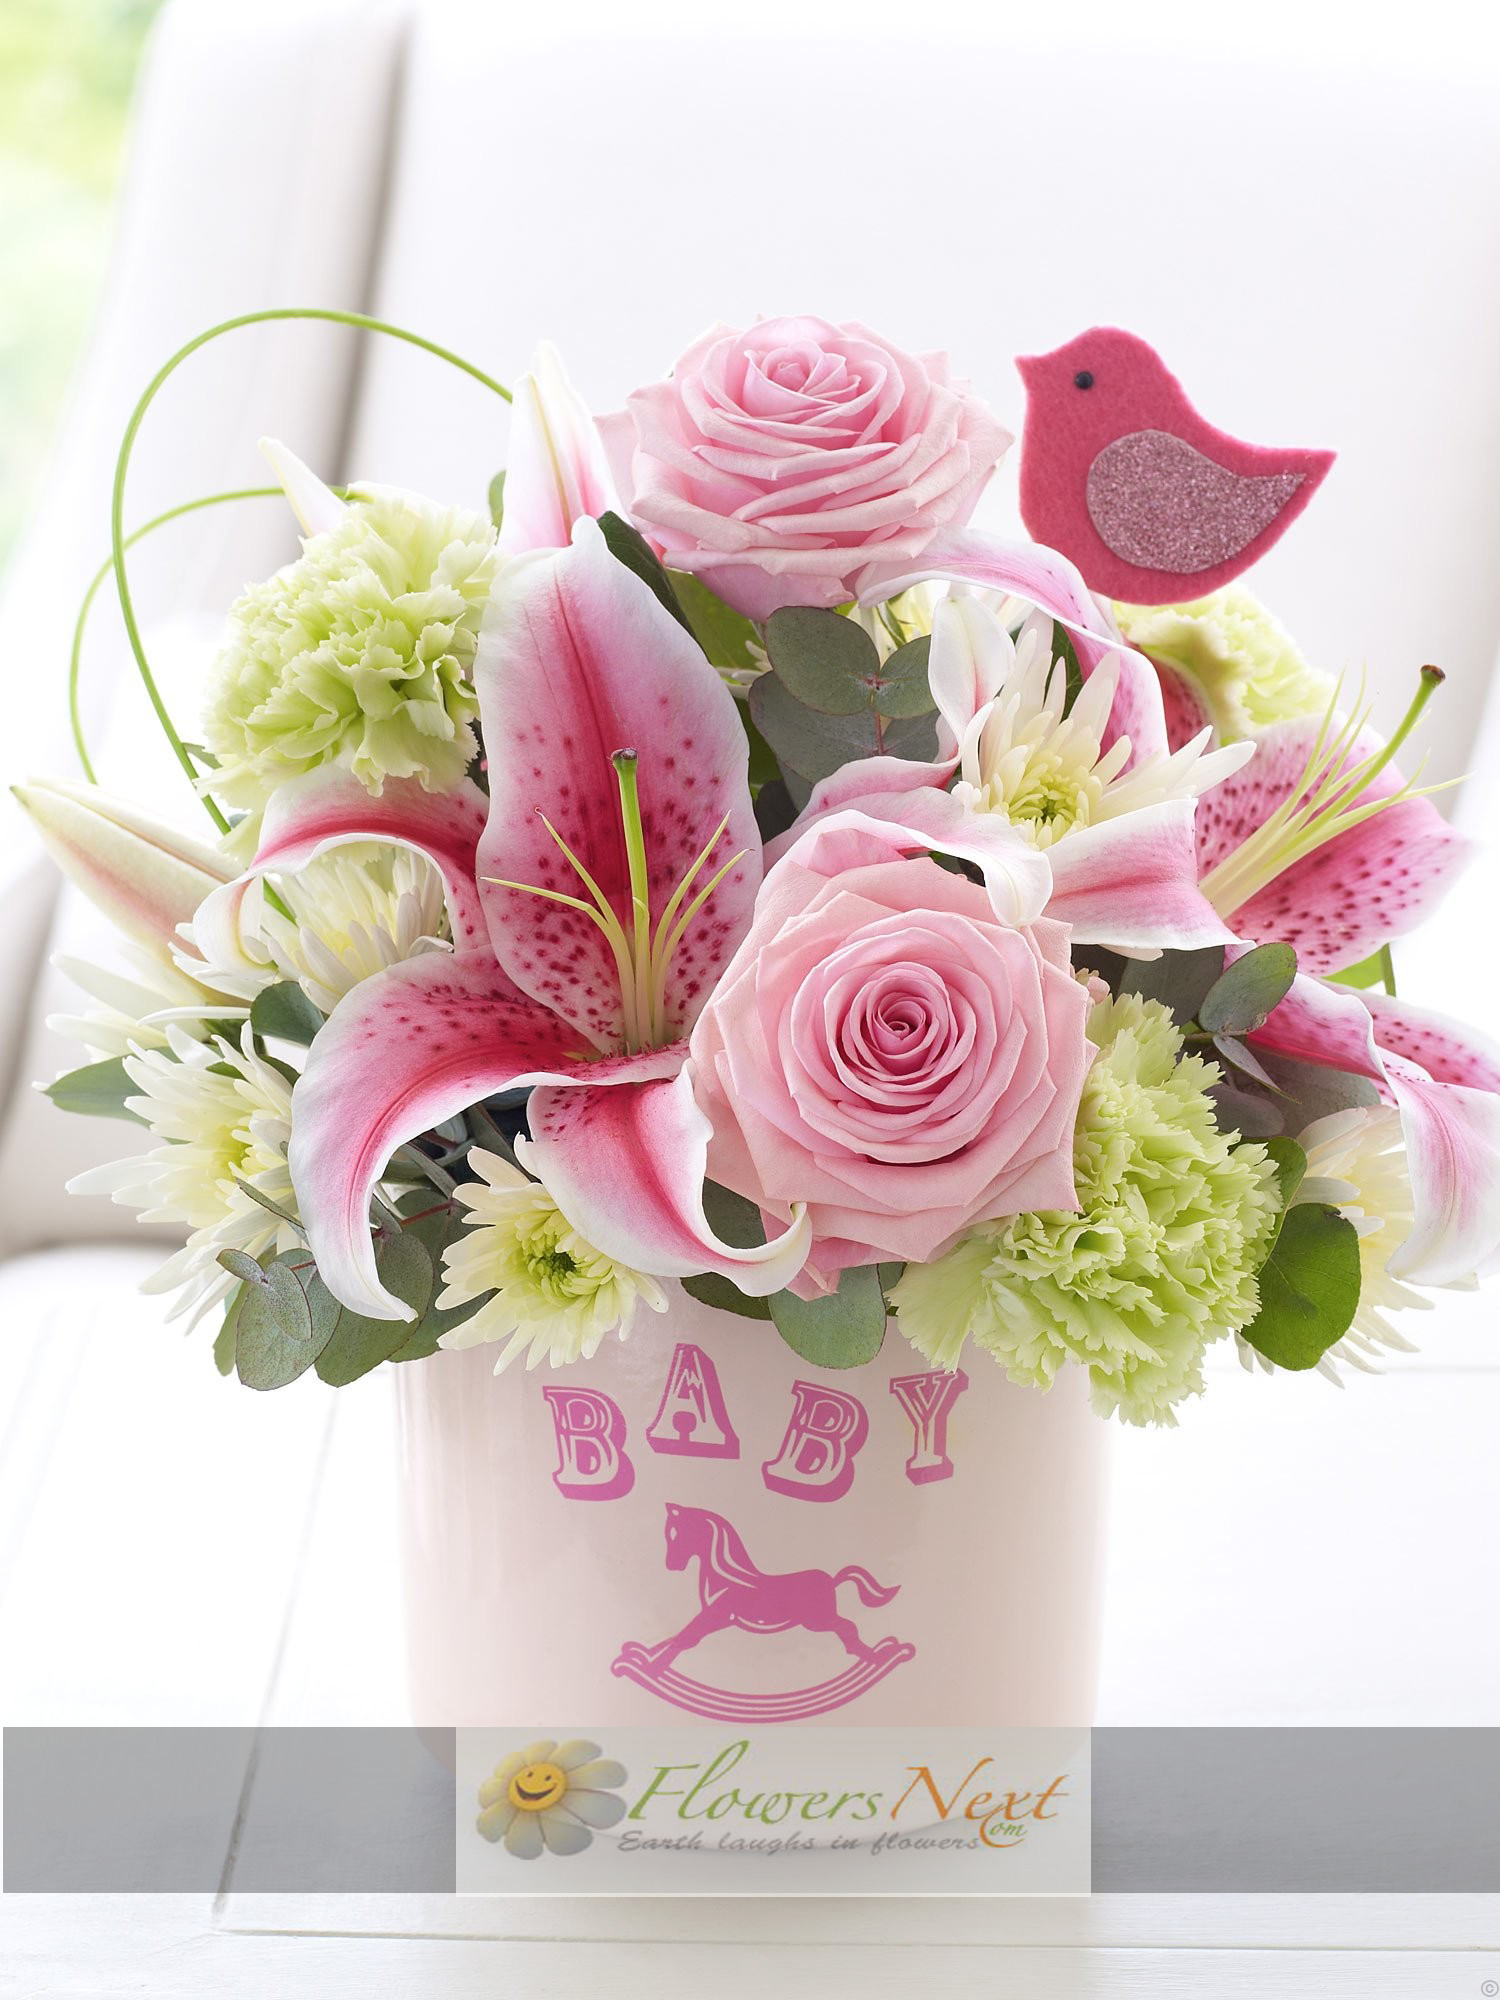 Send New Born Flowers to congratulate them and make them